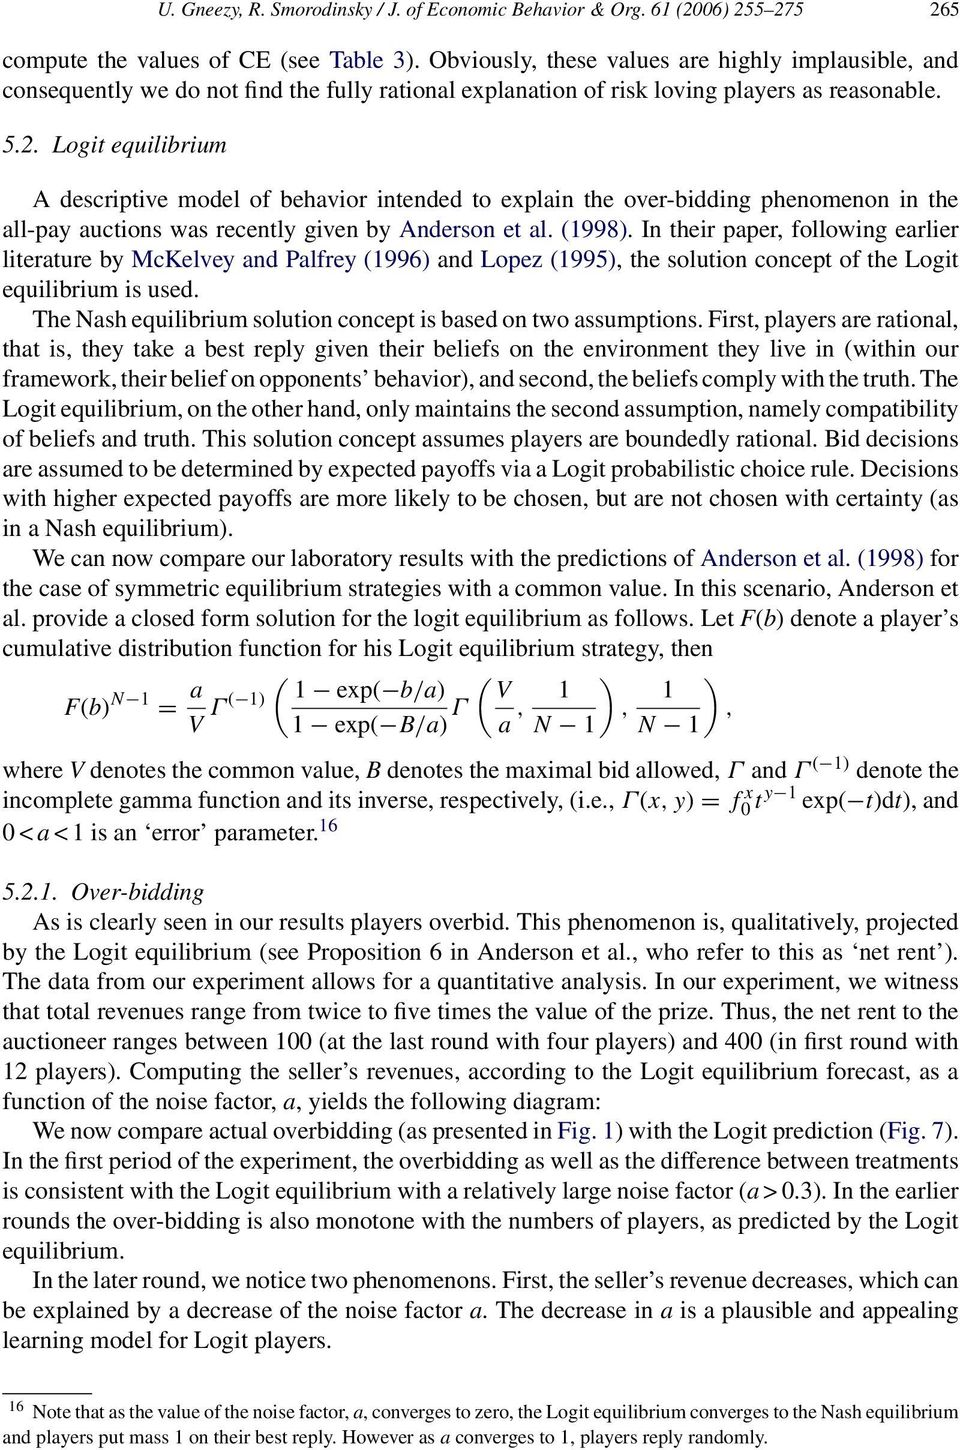 Logit equilibrium A descriptive model of behavior intended to explain the over-bidding phenomenon in the all-pay auctions was recently given by Anderson et al. (1998).